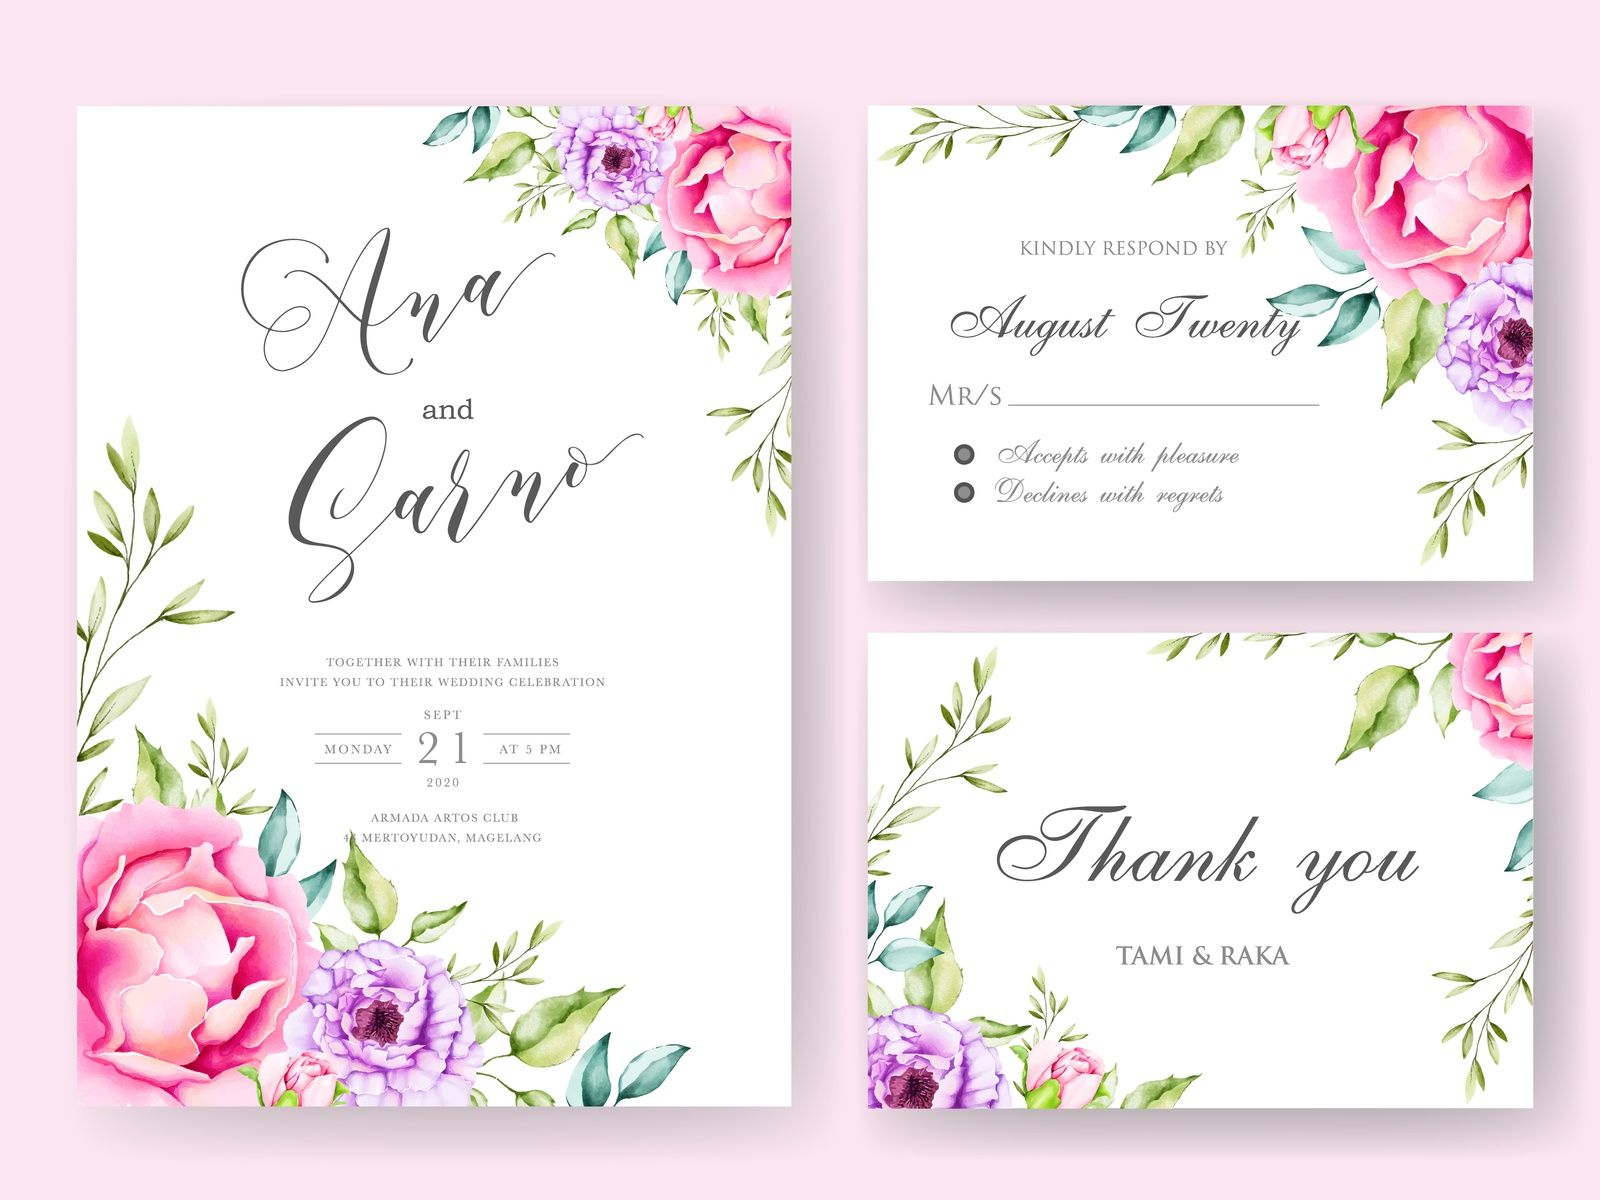 wedding invitation card with black background floral